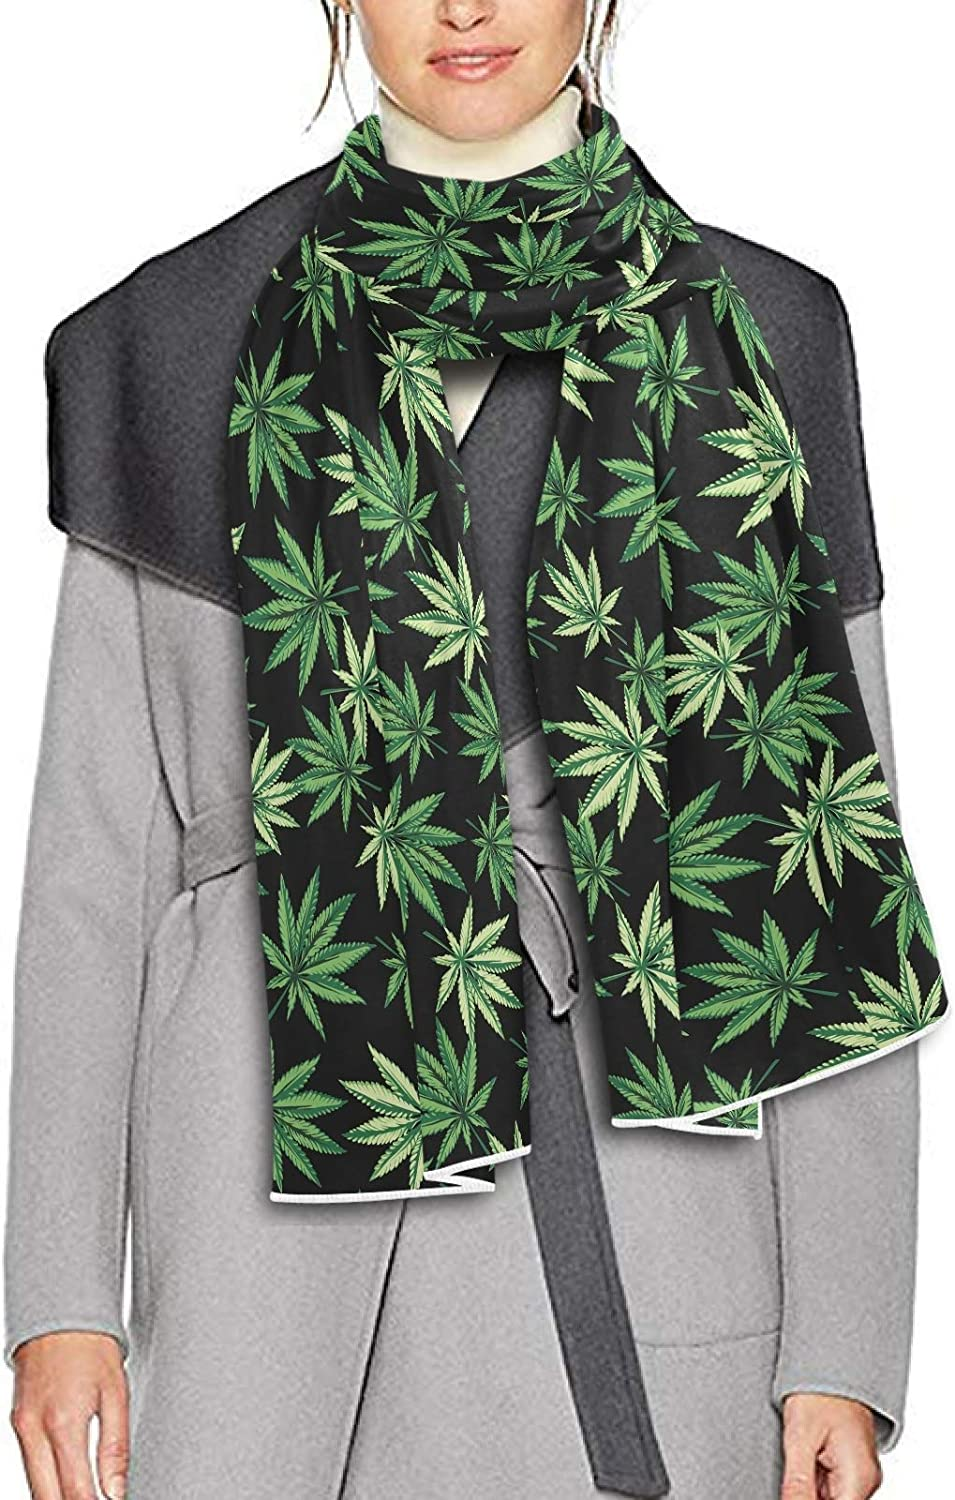 Scarf for Women and Men Leaves Marijuana Shawl Wraps Blanket Scarf Thick Soft Winter Large Scarves Lightweight